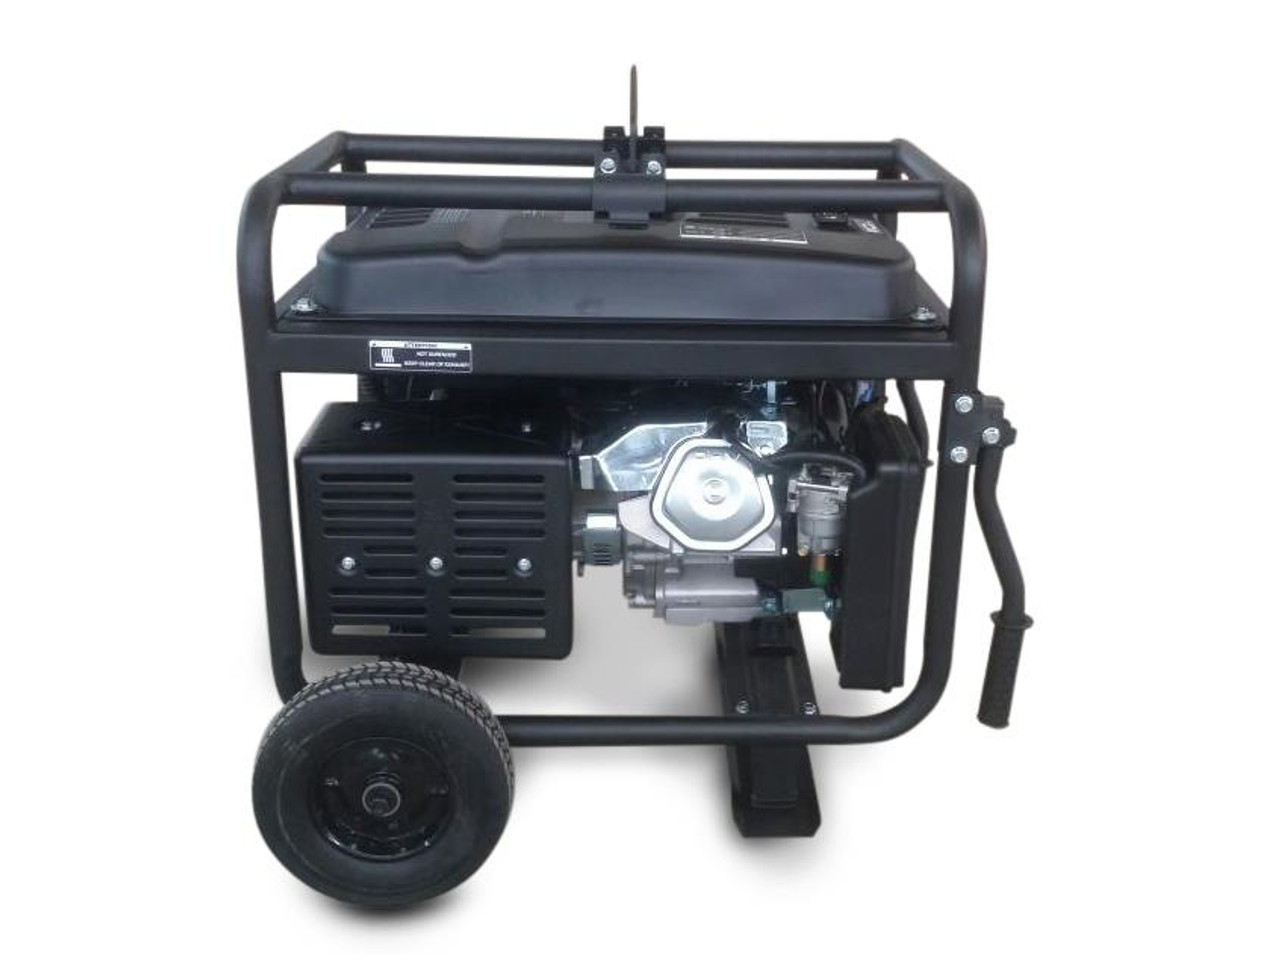 Perfect portable generator for home power back